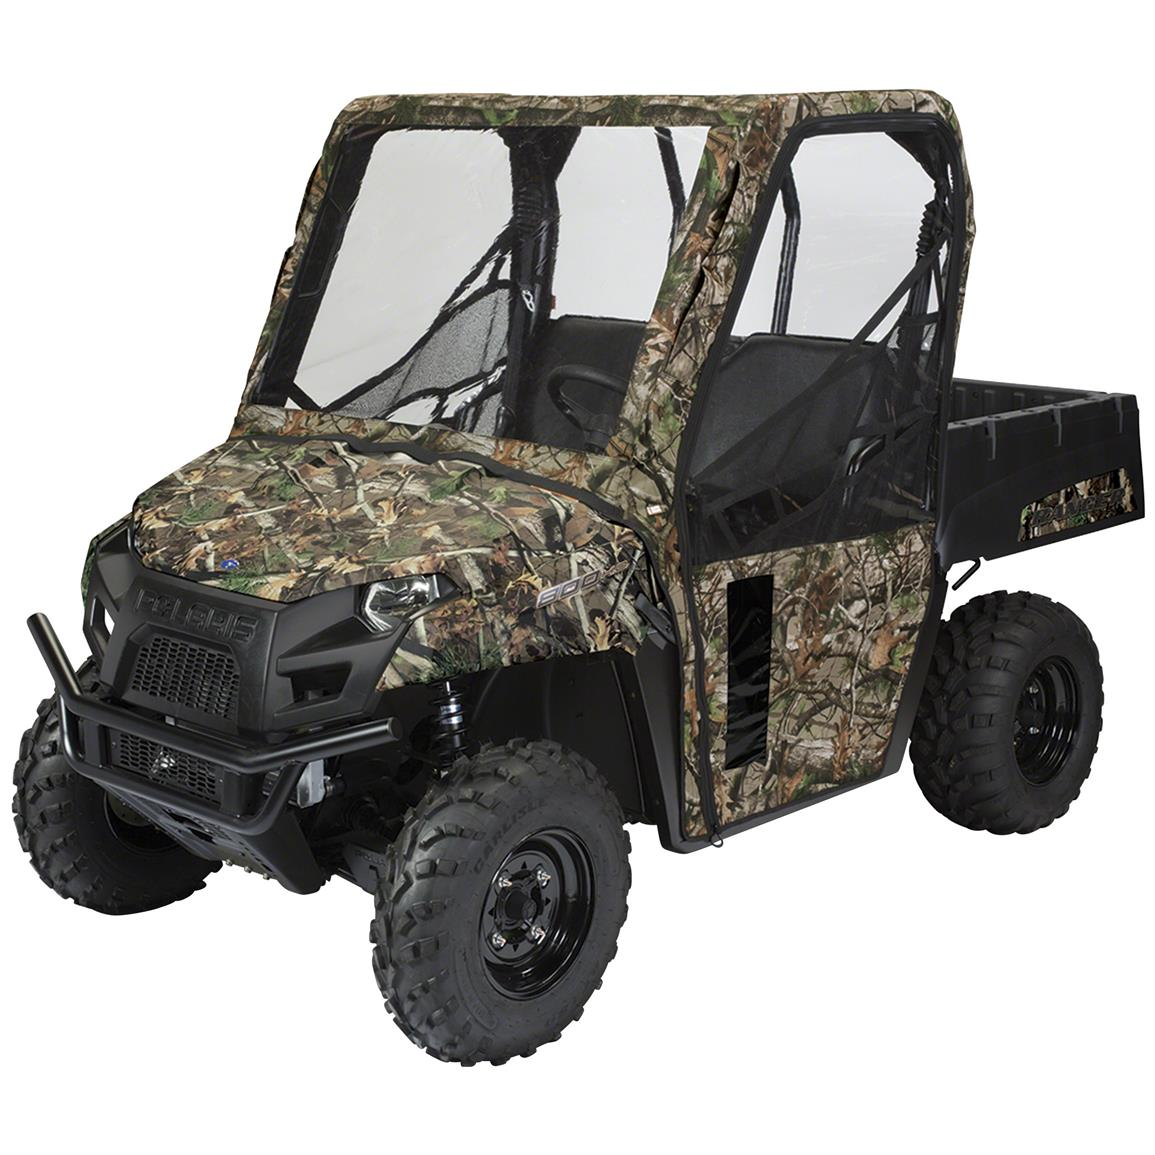 Quad Gear UTV Cab Enclosure, Polaris Ranger Mid-Size 400, 500, 800 Series, Next Camo